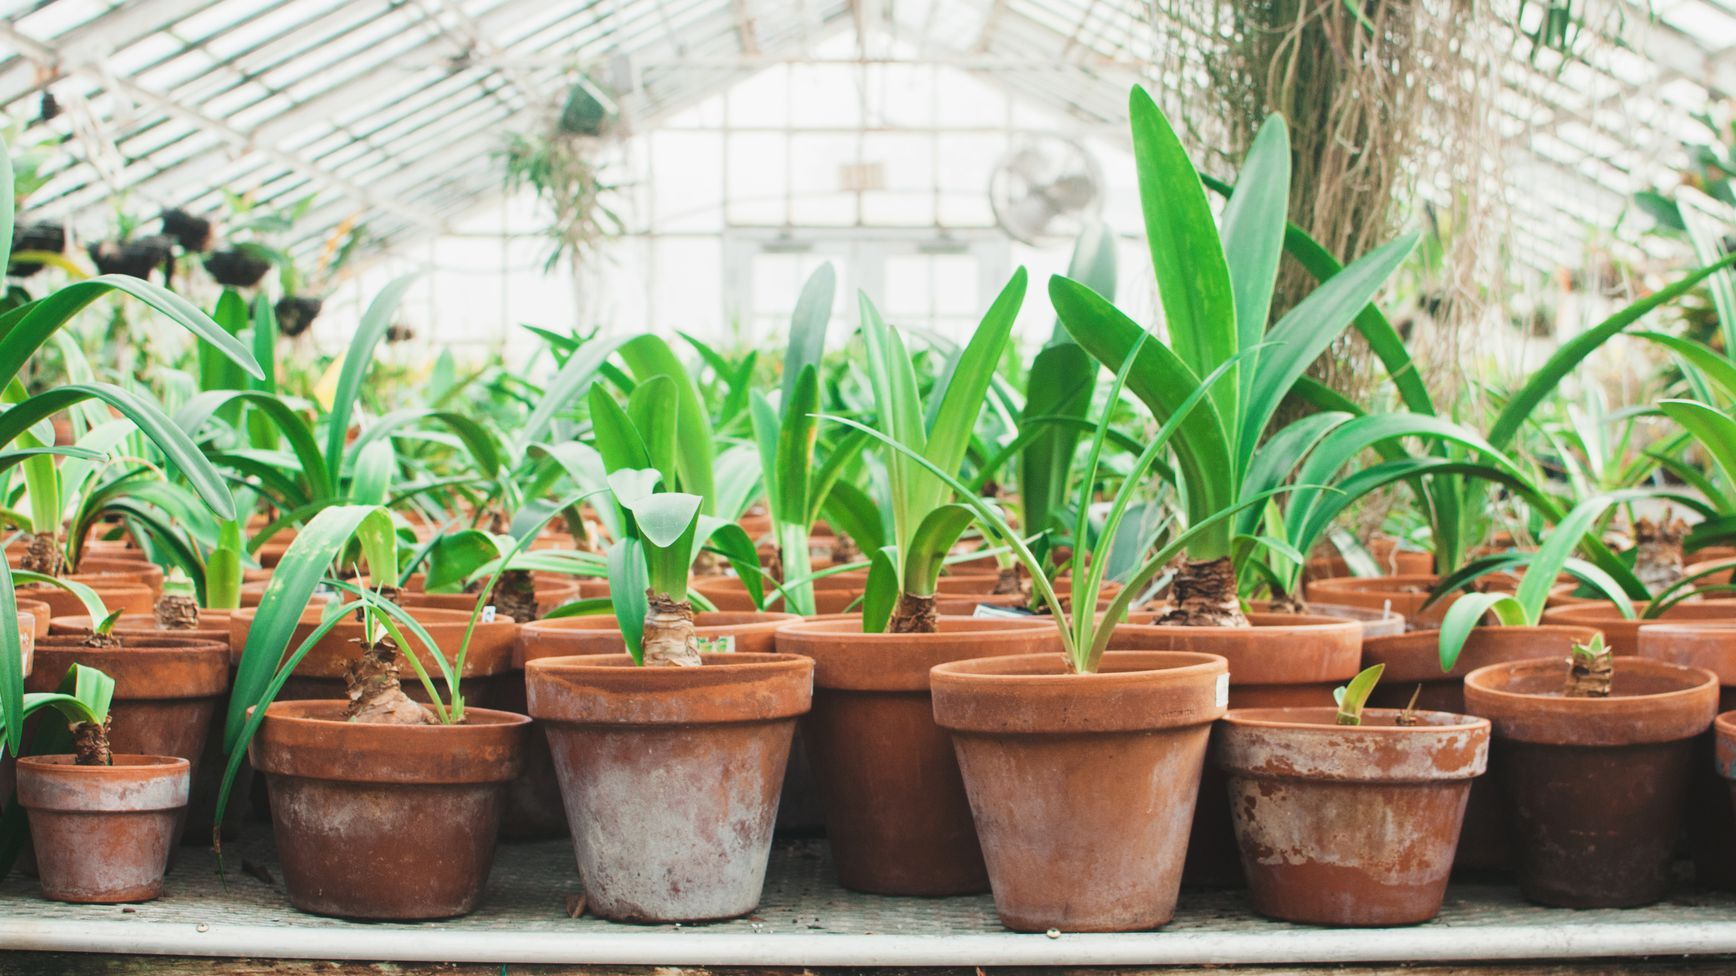 Use terra cotta pots or containers with drainage